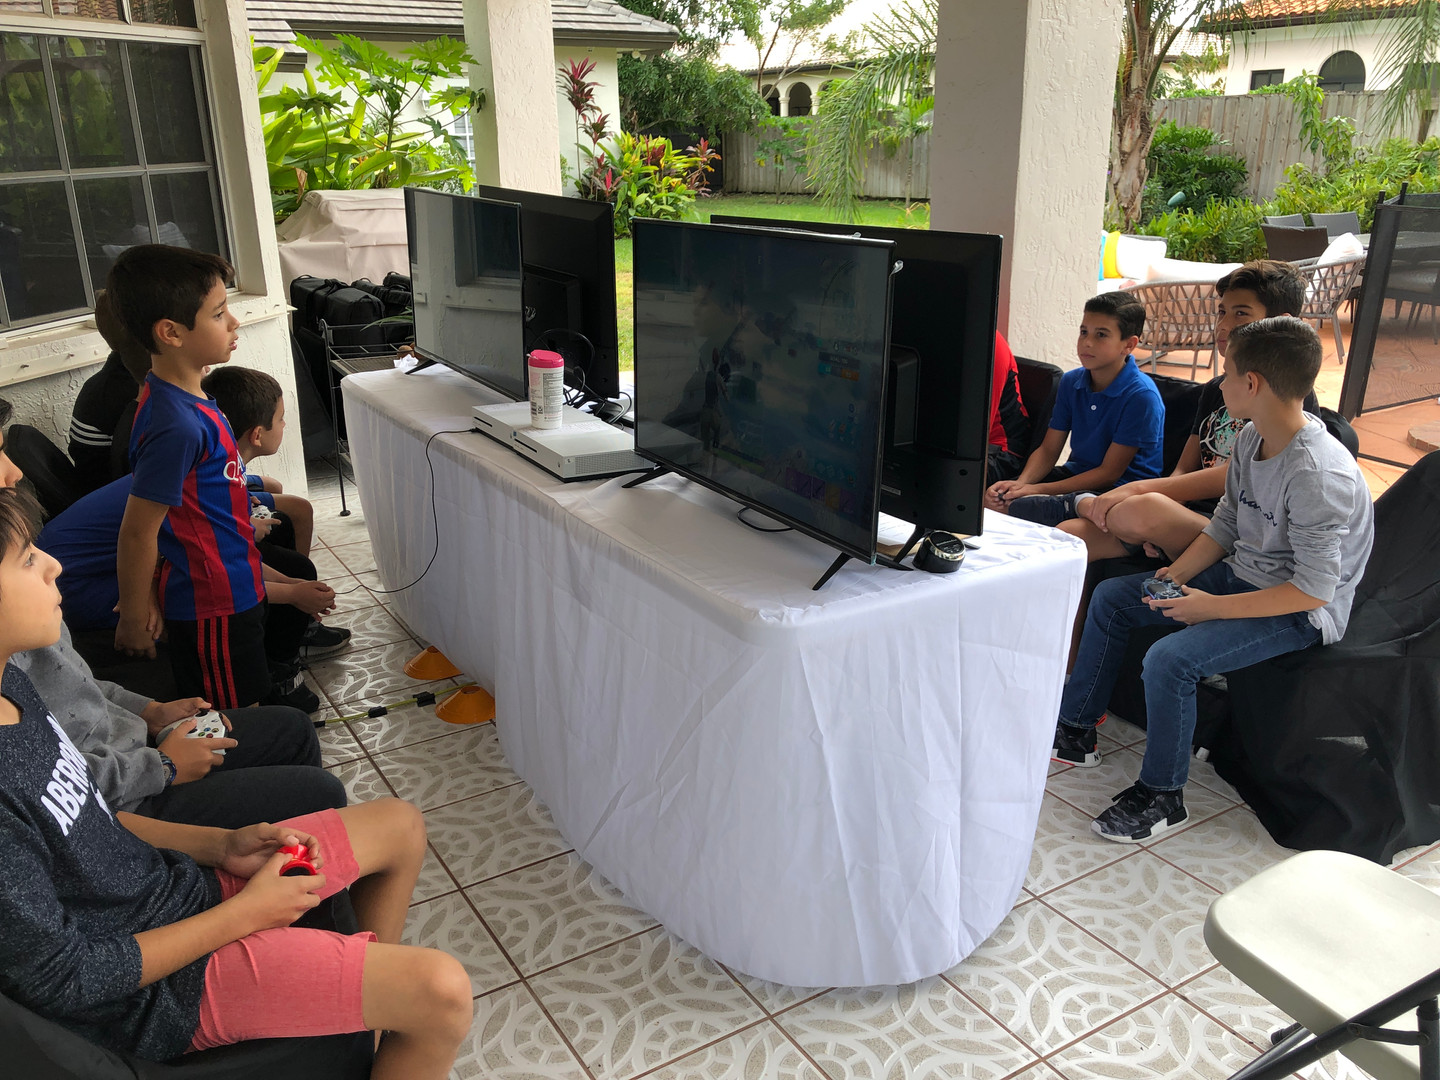 Video Gaming Party Pinecrest